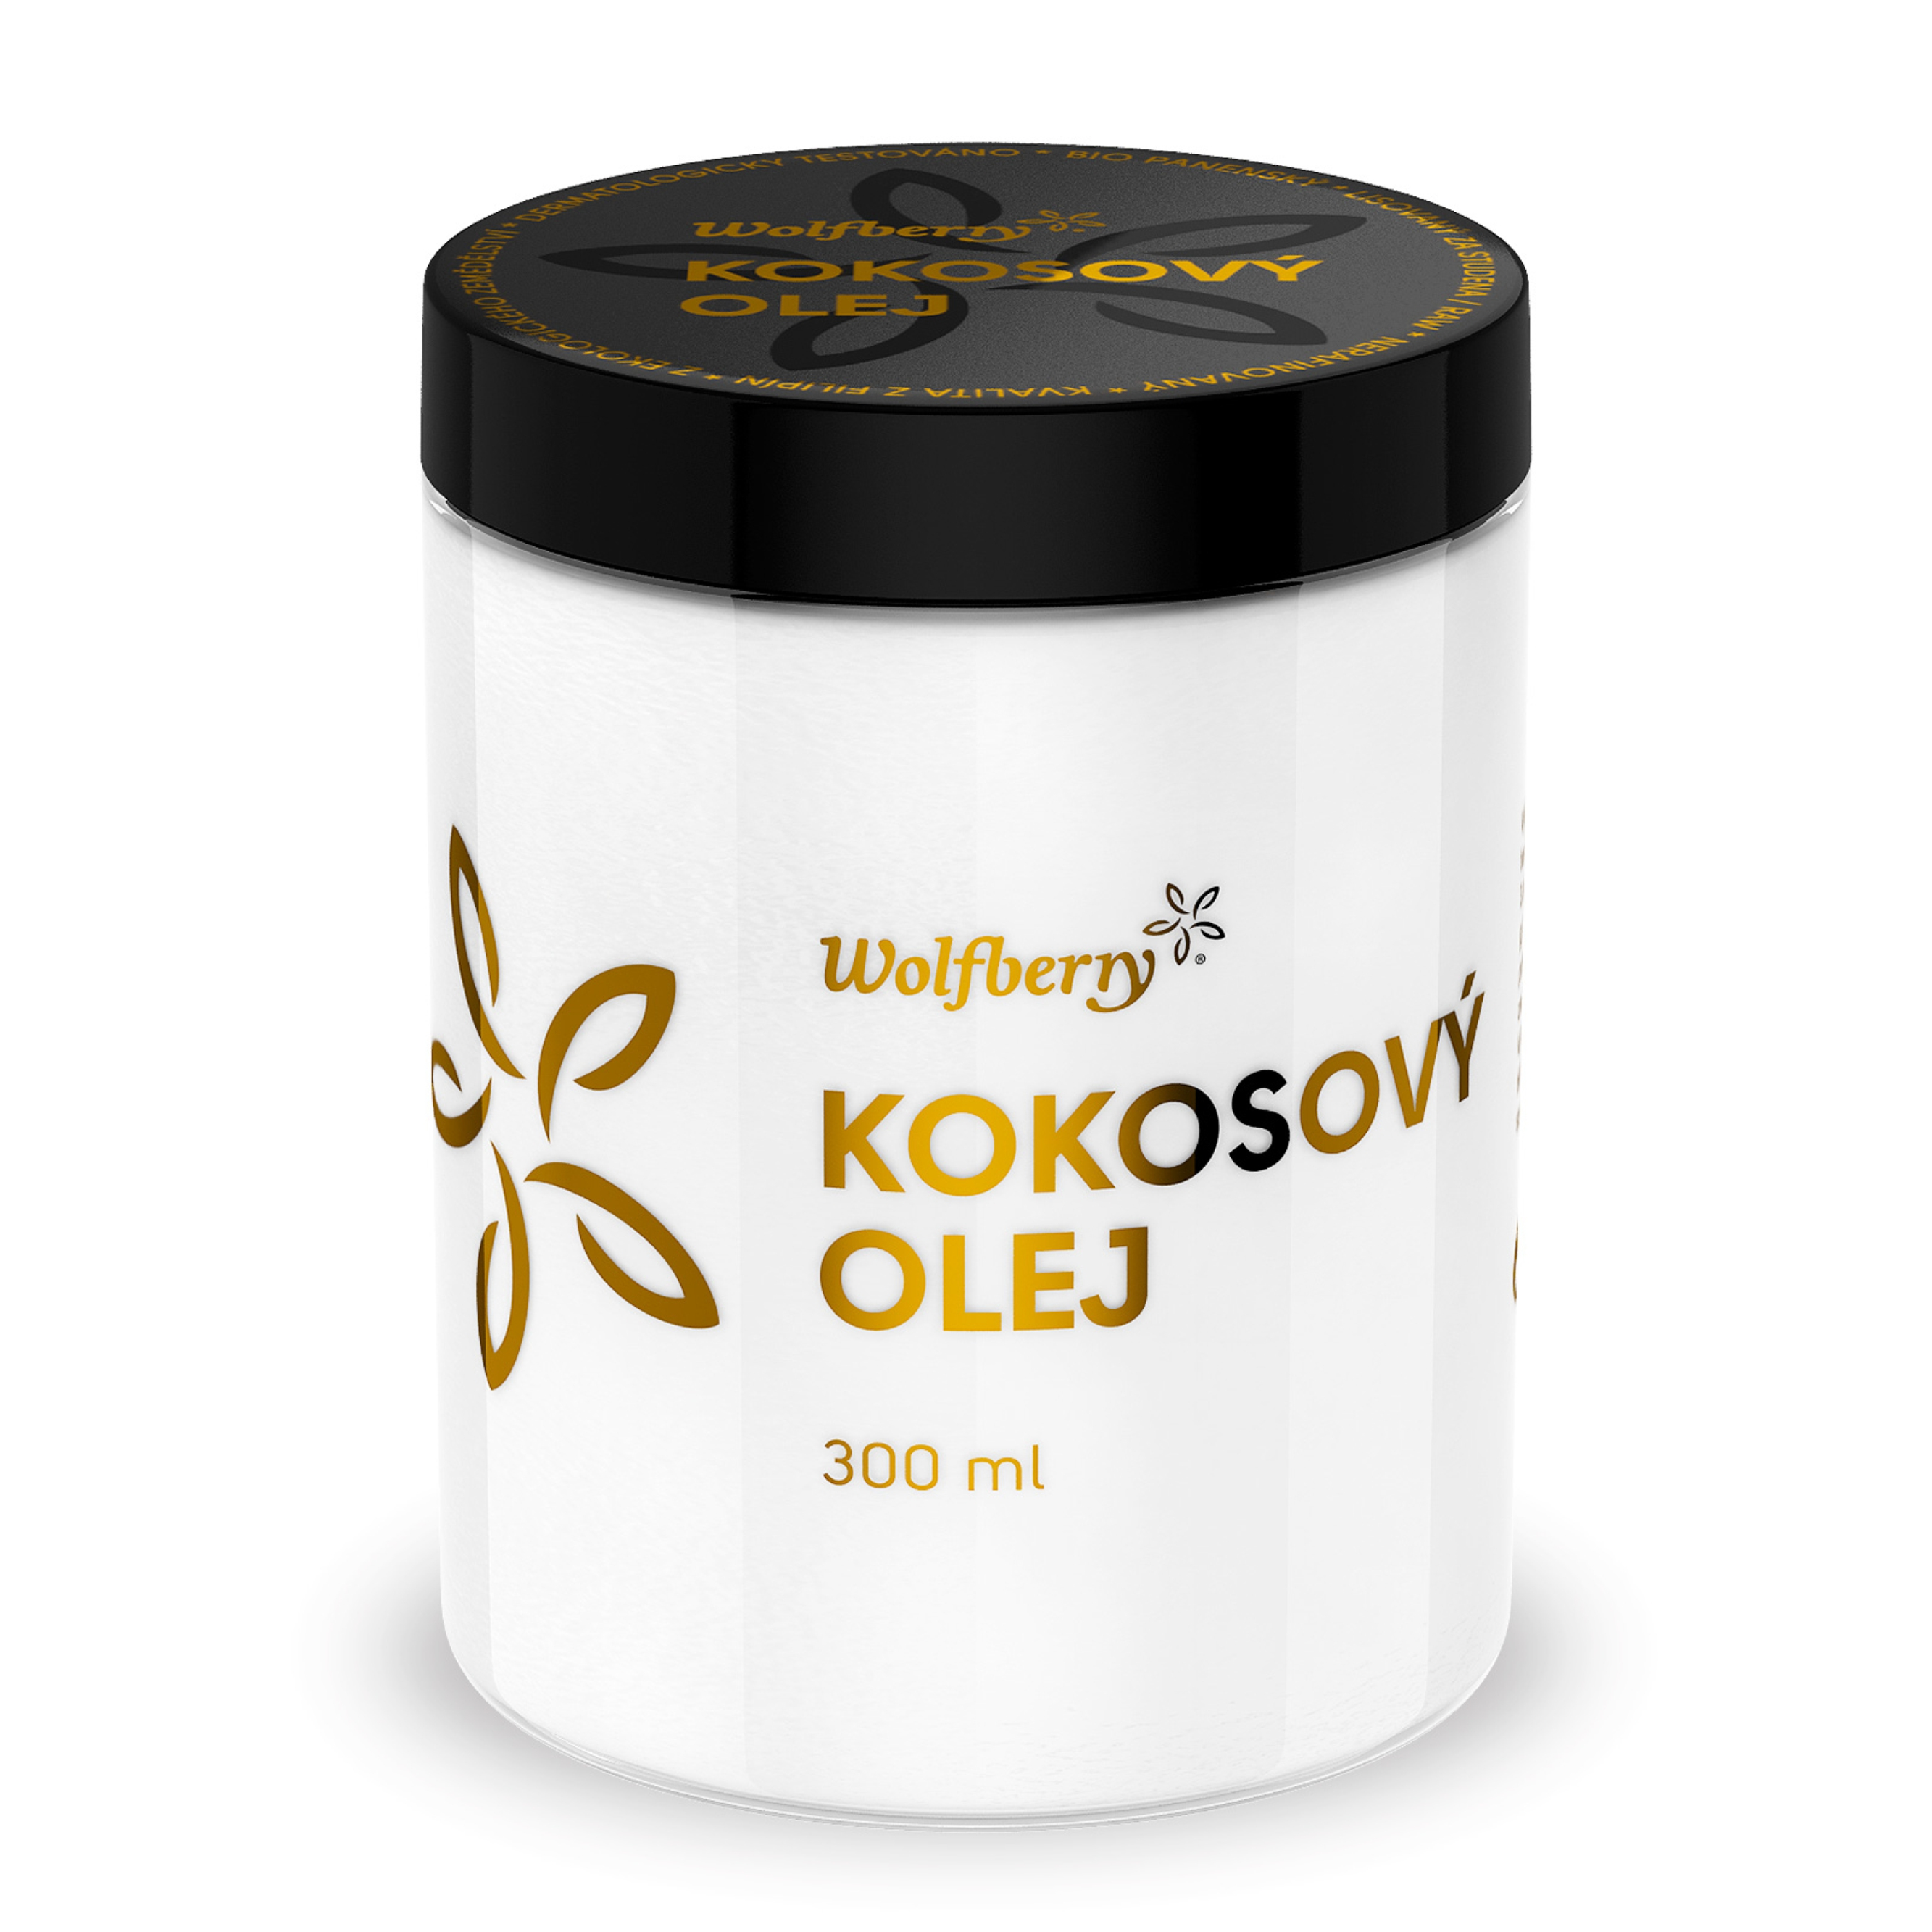 Wolfberry WF Panenský kokosový olej BIO 300 ml Wolfberry * 300ml